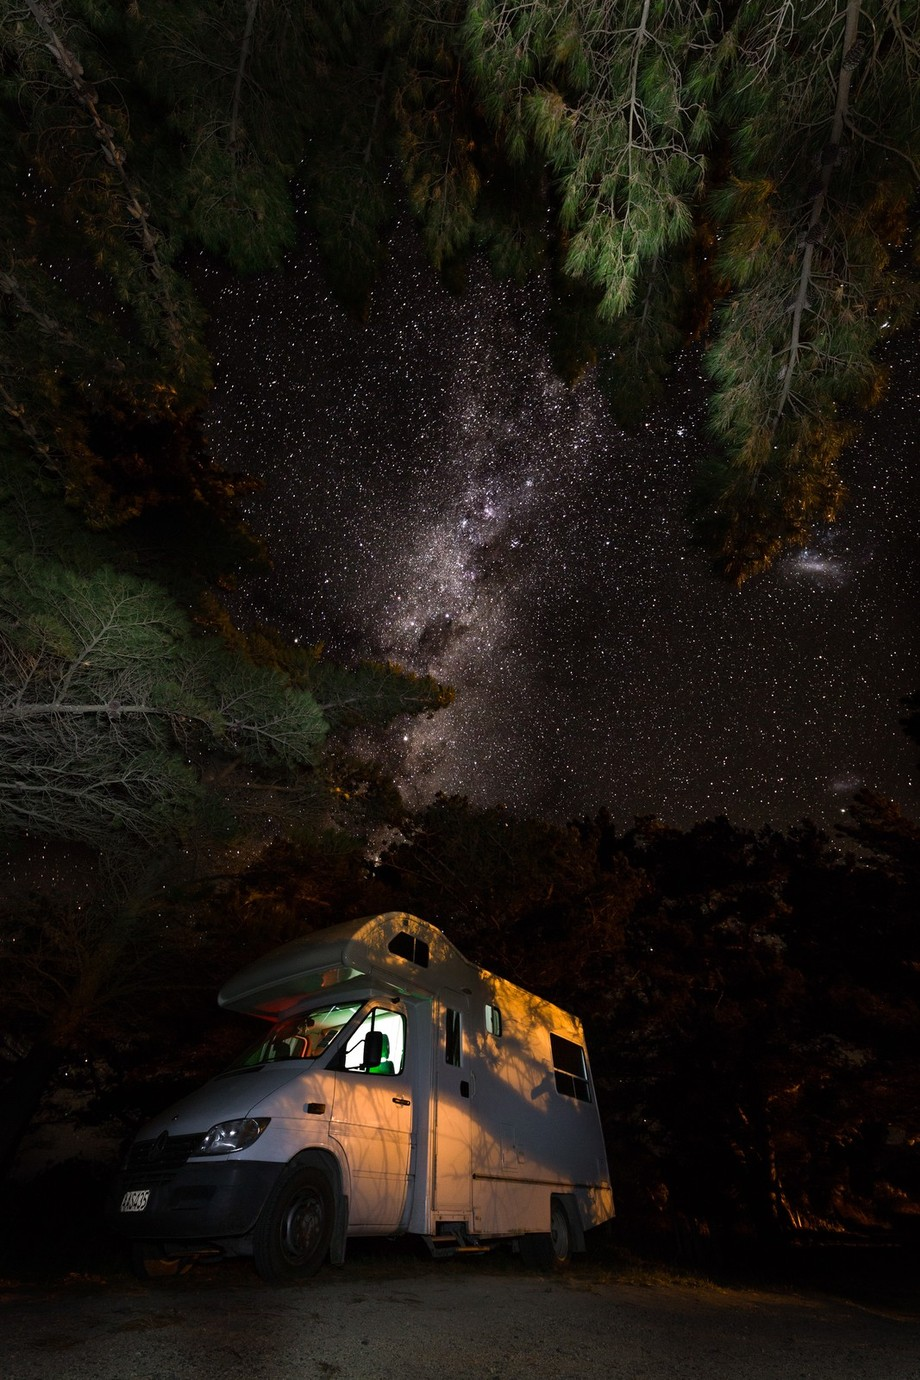 Freedom camping by gesser - Capture The Milky Way Photo Contest